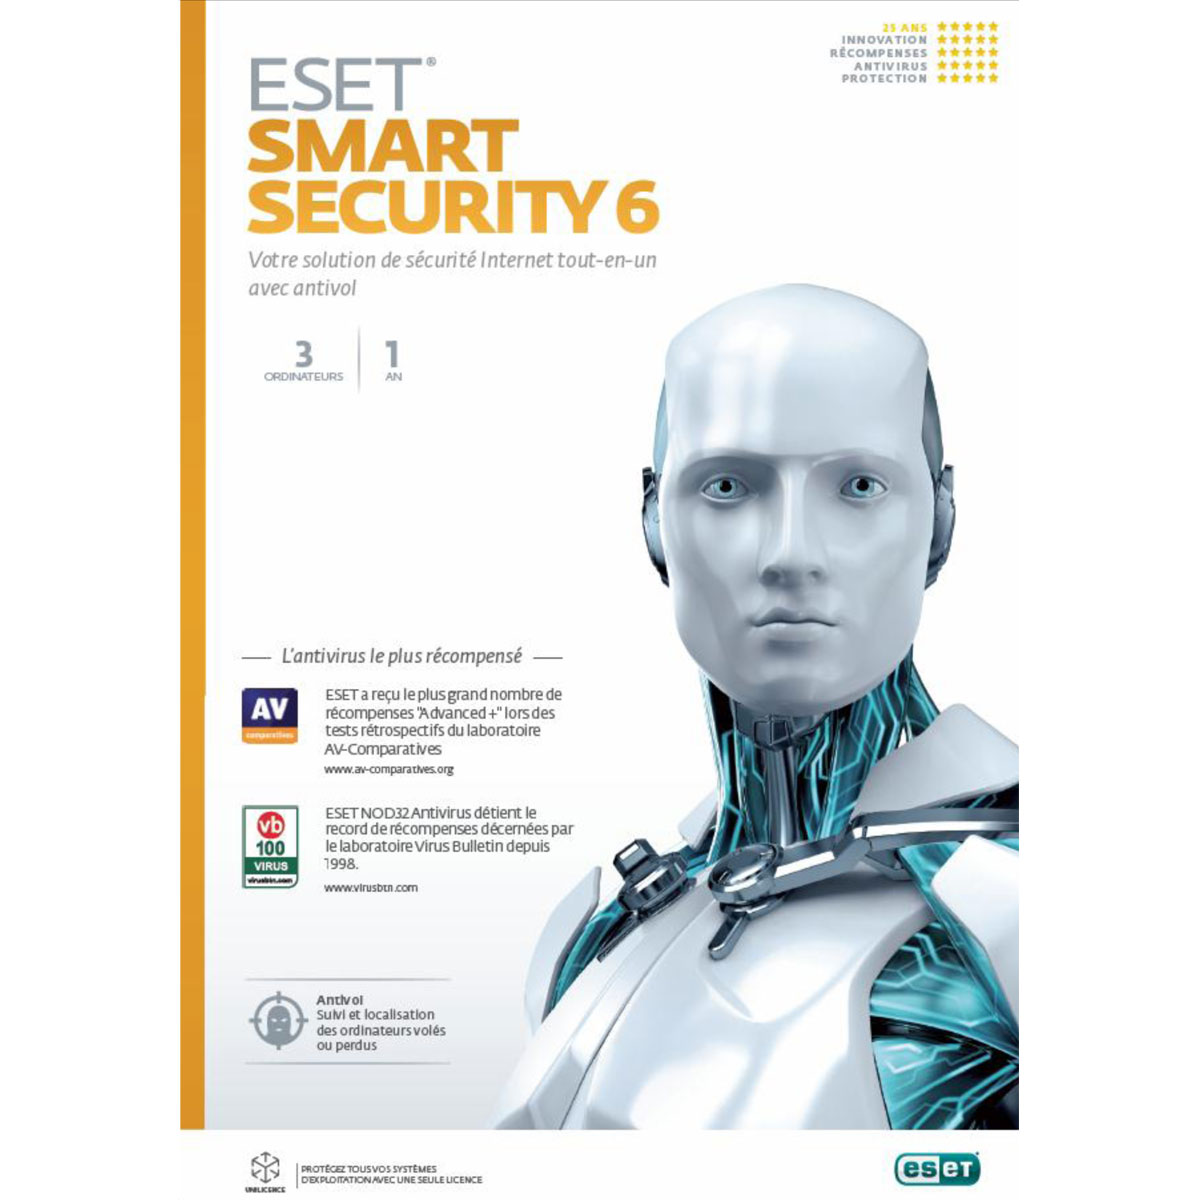 Logiciel antivirus ESET Smart Security 6 - Licence 1 an 3 postes (français, WINDOWS) Suite de sécurité complète - Licence 1 an 3 postes (français, WINDOWS)